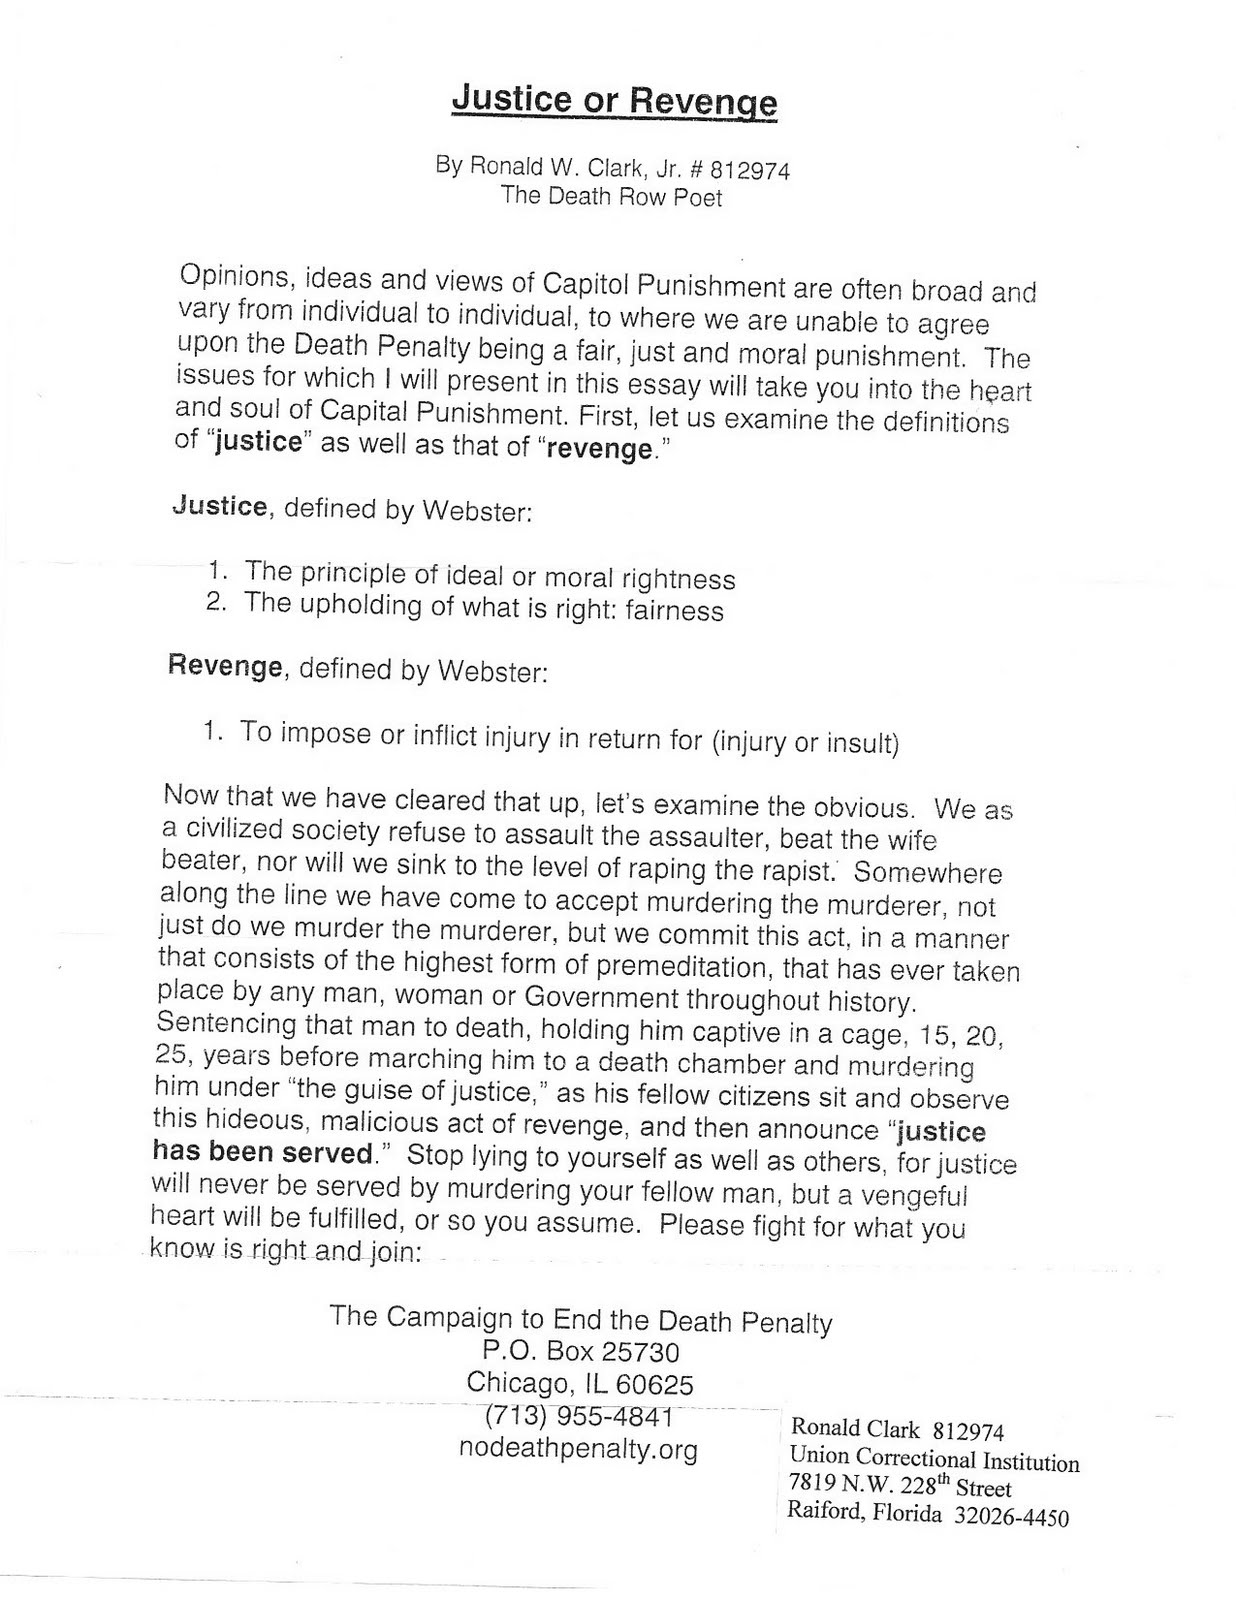 death penalty proposal essay Essay: arguments against the death penalty no side was taken in this essay however the title clearly states that the essay should be on arguments against.